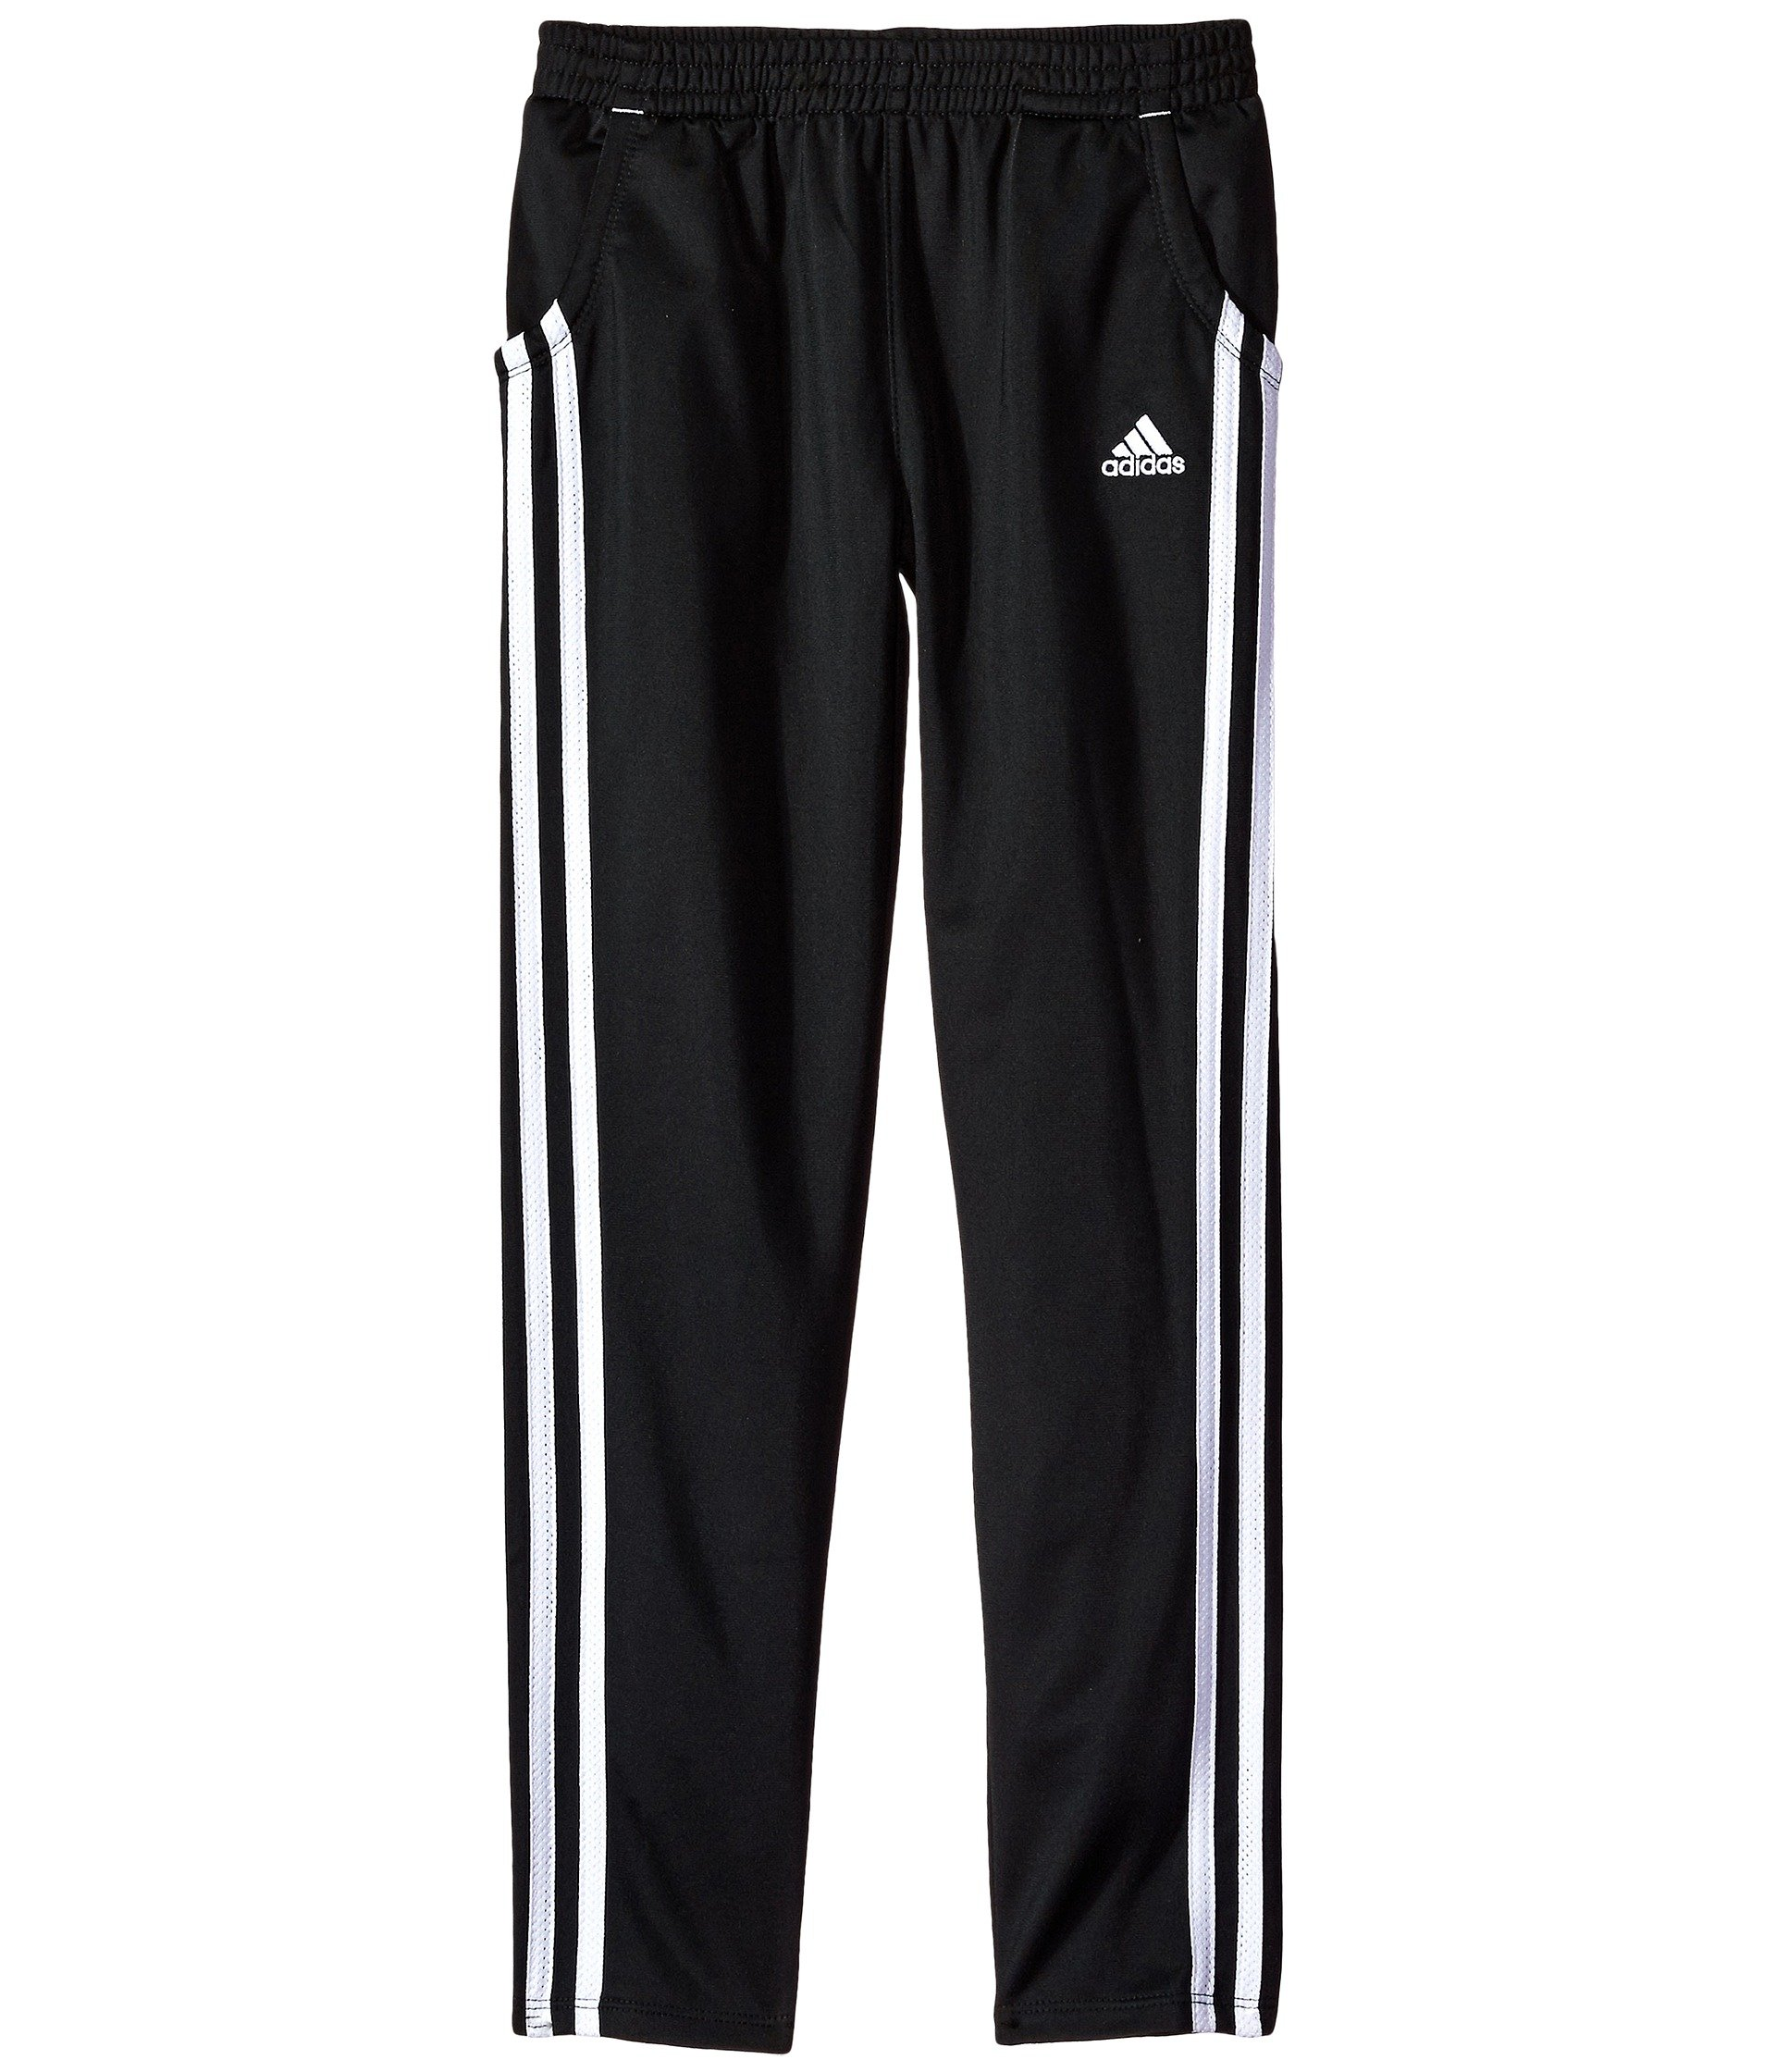 adidas Girls' Tricot Track Pants by adidas